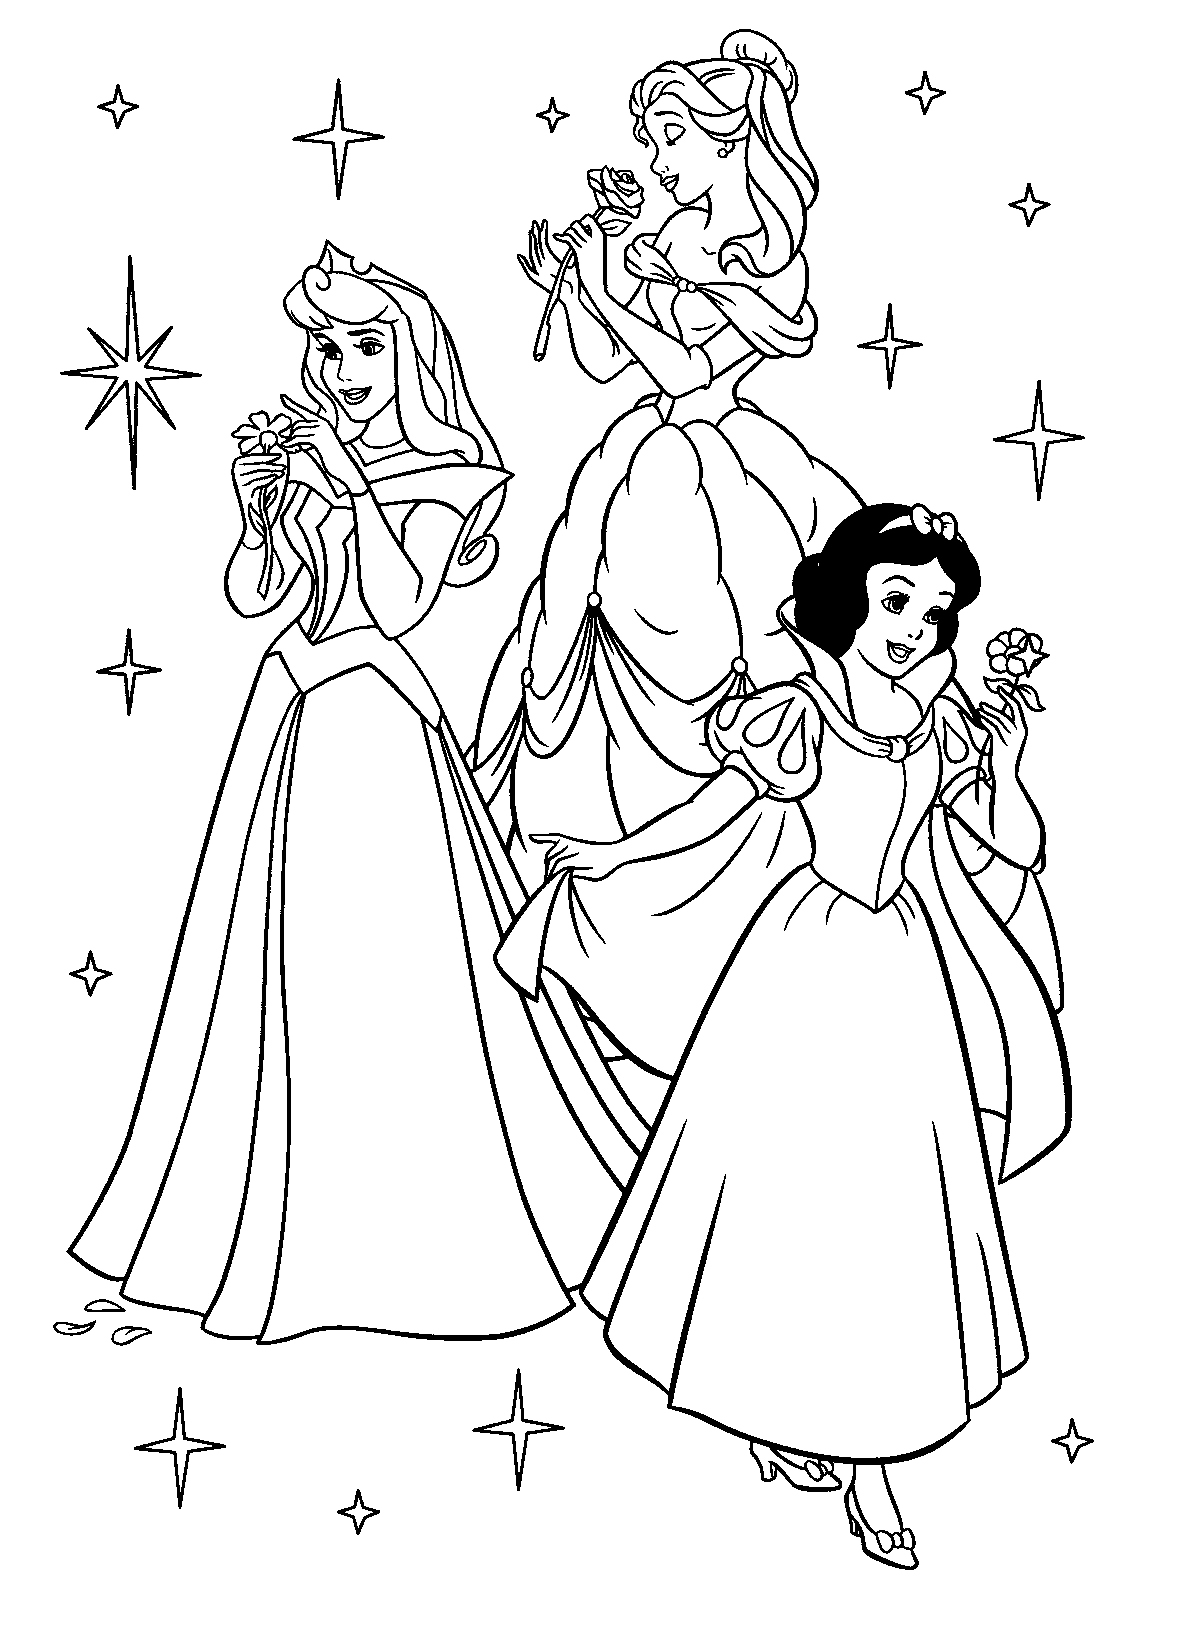 free coloring disney pages | Princess Coloring Pages - Best Coloring Pages For Kids